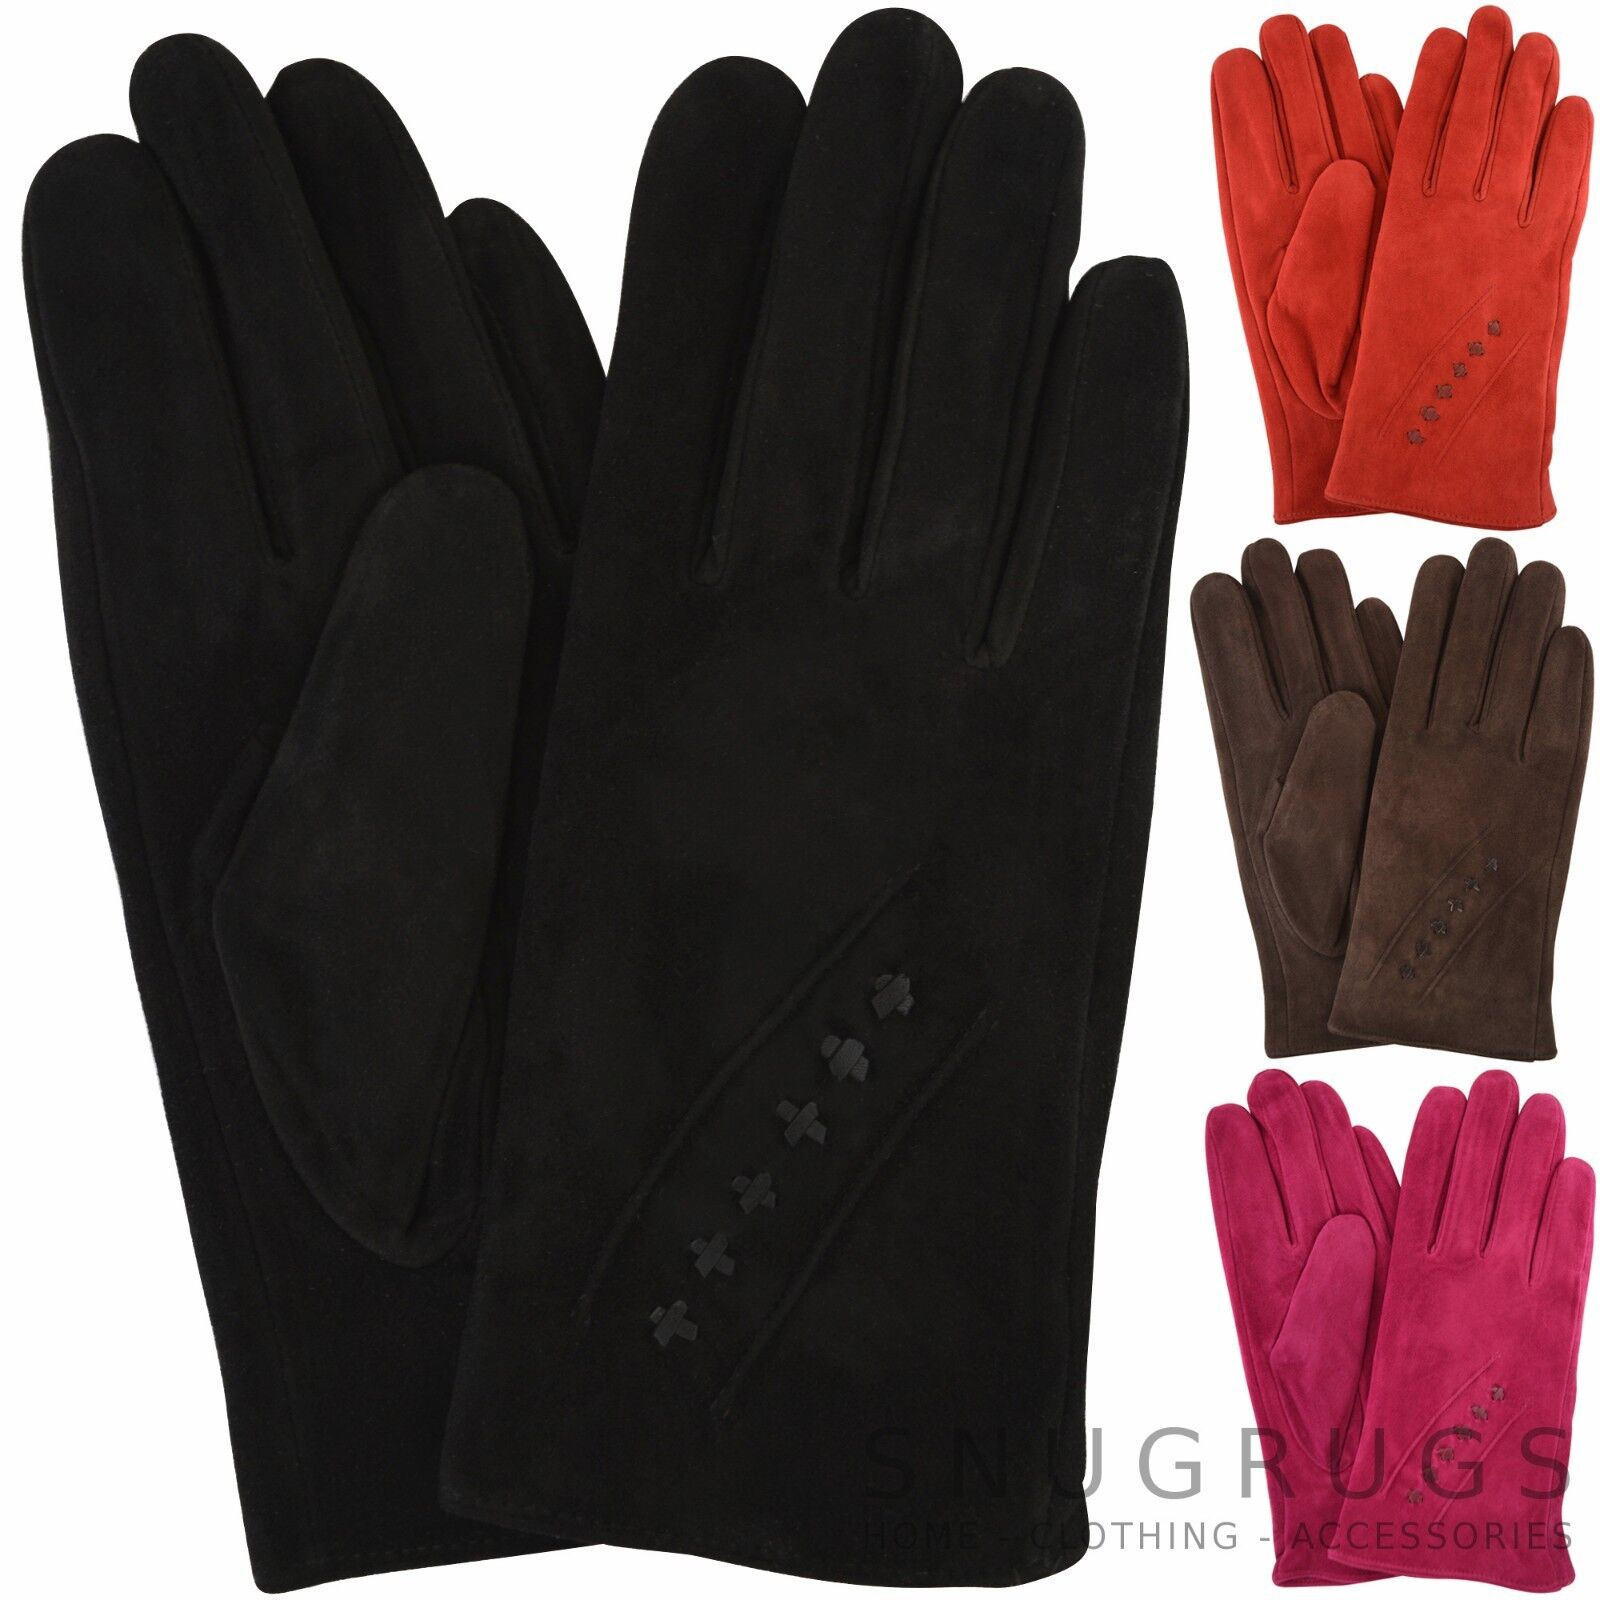 5b4bc2f56 Details about Ladies / Womens Soft Suede Gloves with Warm Fleece Lining and  Stitch Design